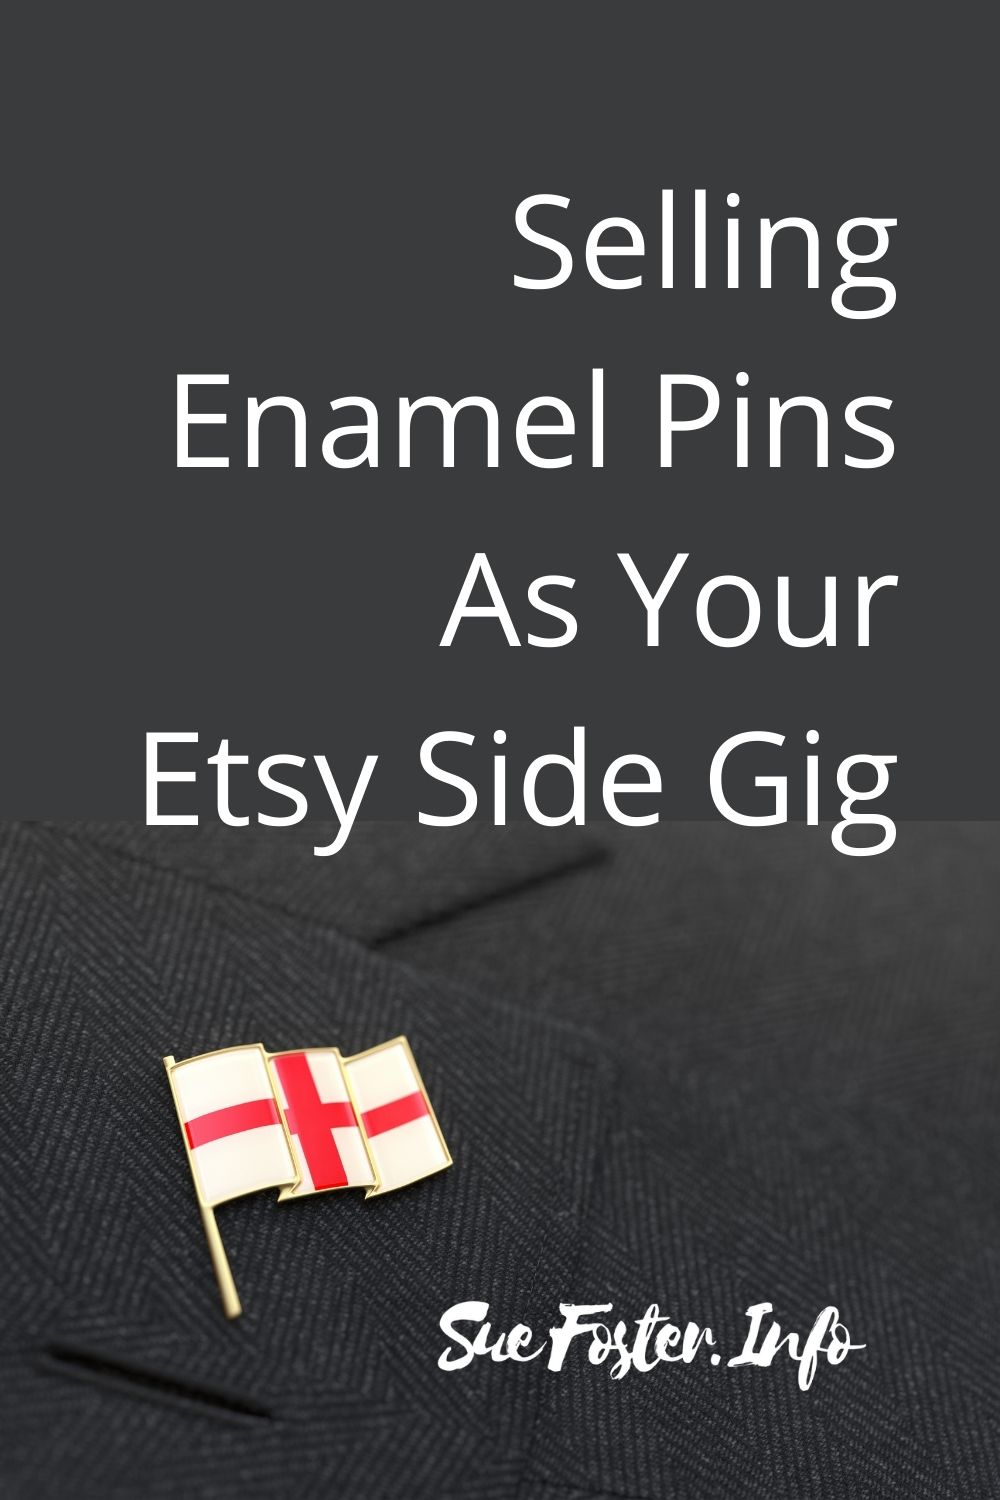 Selling Enamel Pins As Your Etsy Side Gig